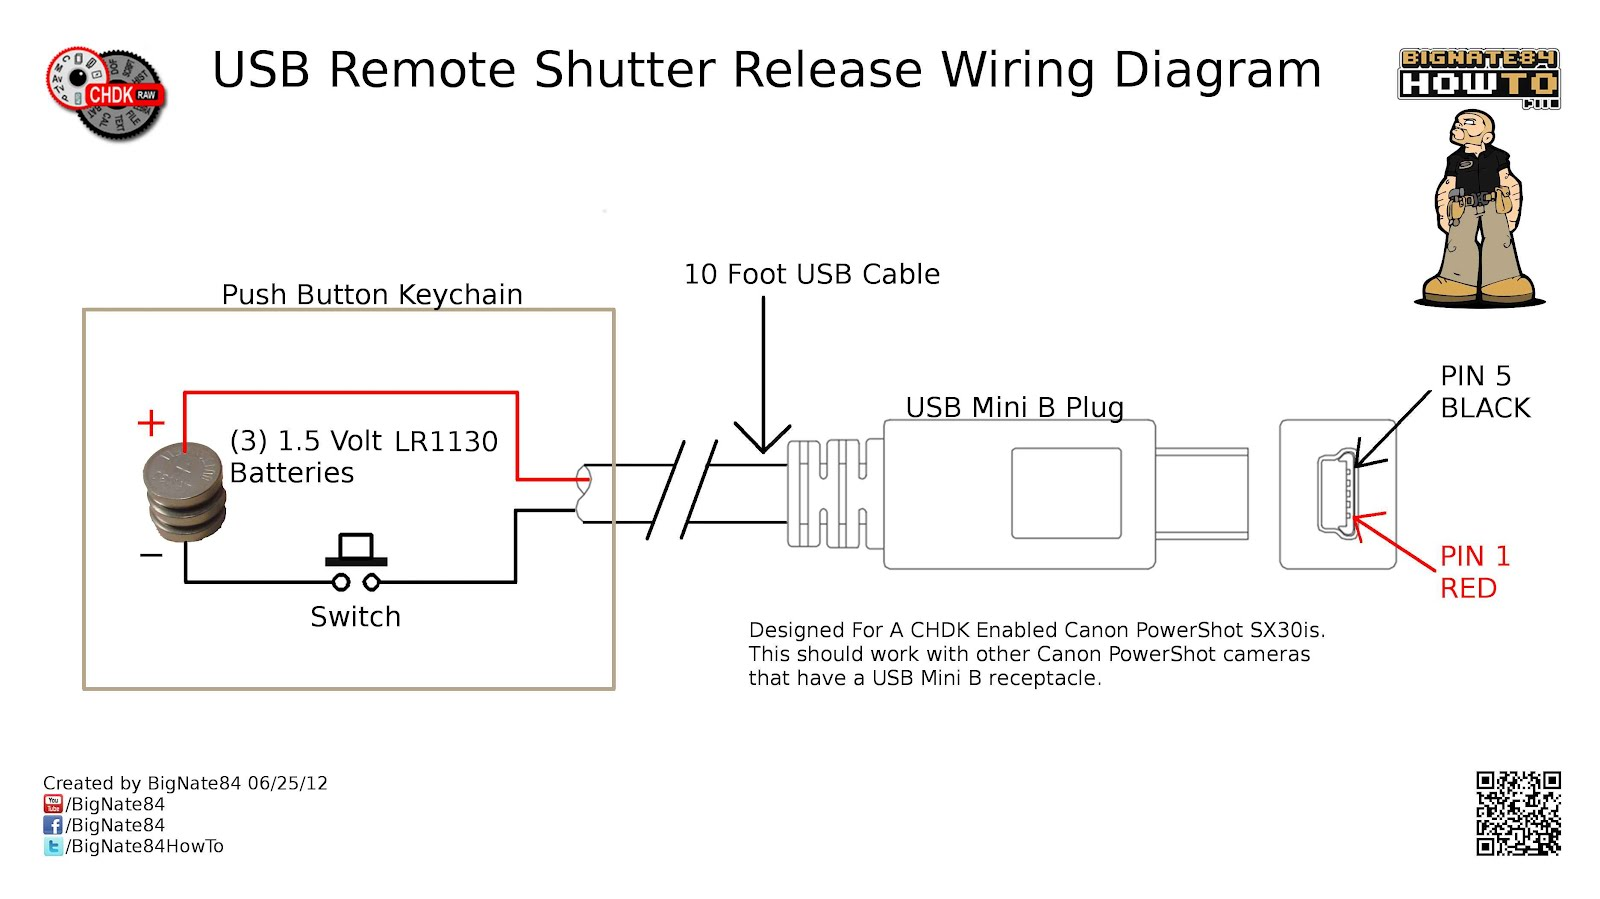 latest?cb=20120809225626 image 0001 usb remote shutter wiring diagram 1 jpeg chdk wiki usb connector wiring diagram at reclaimingppi.co